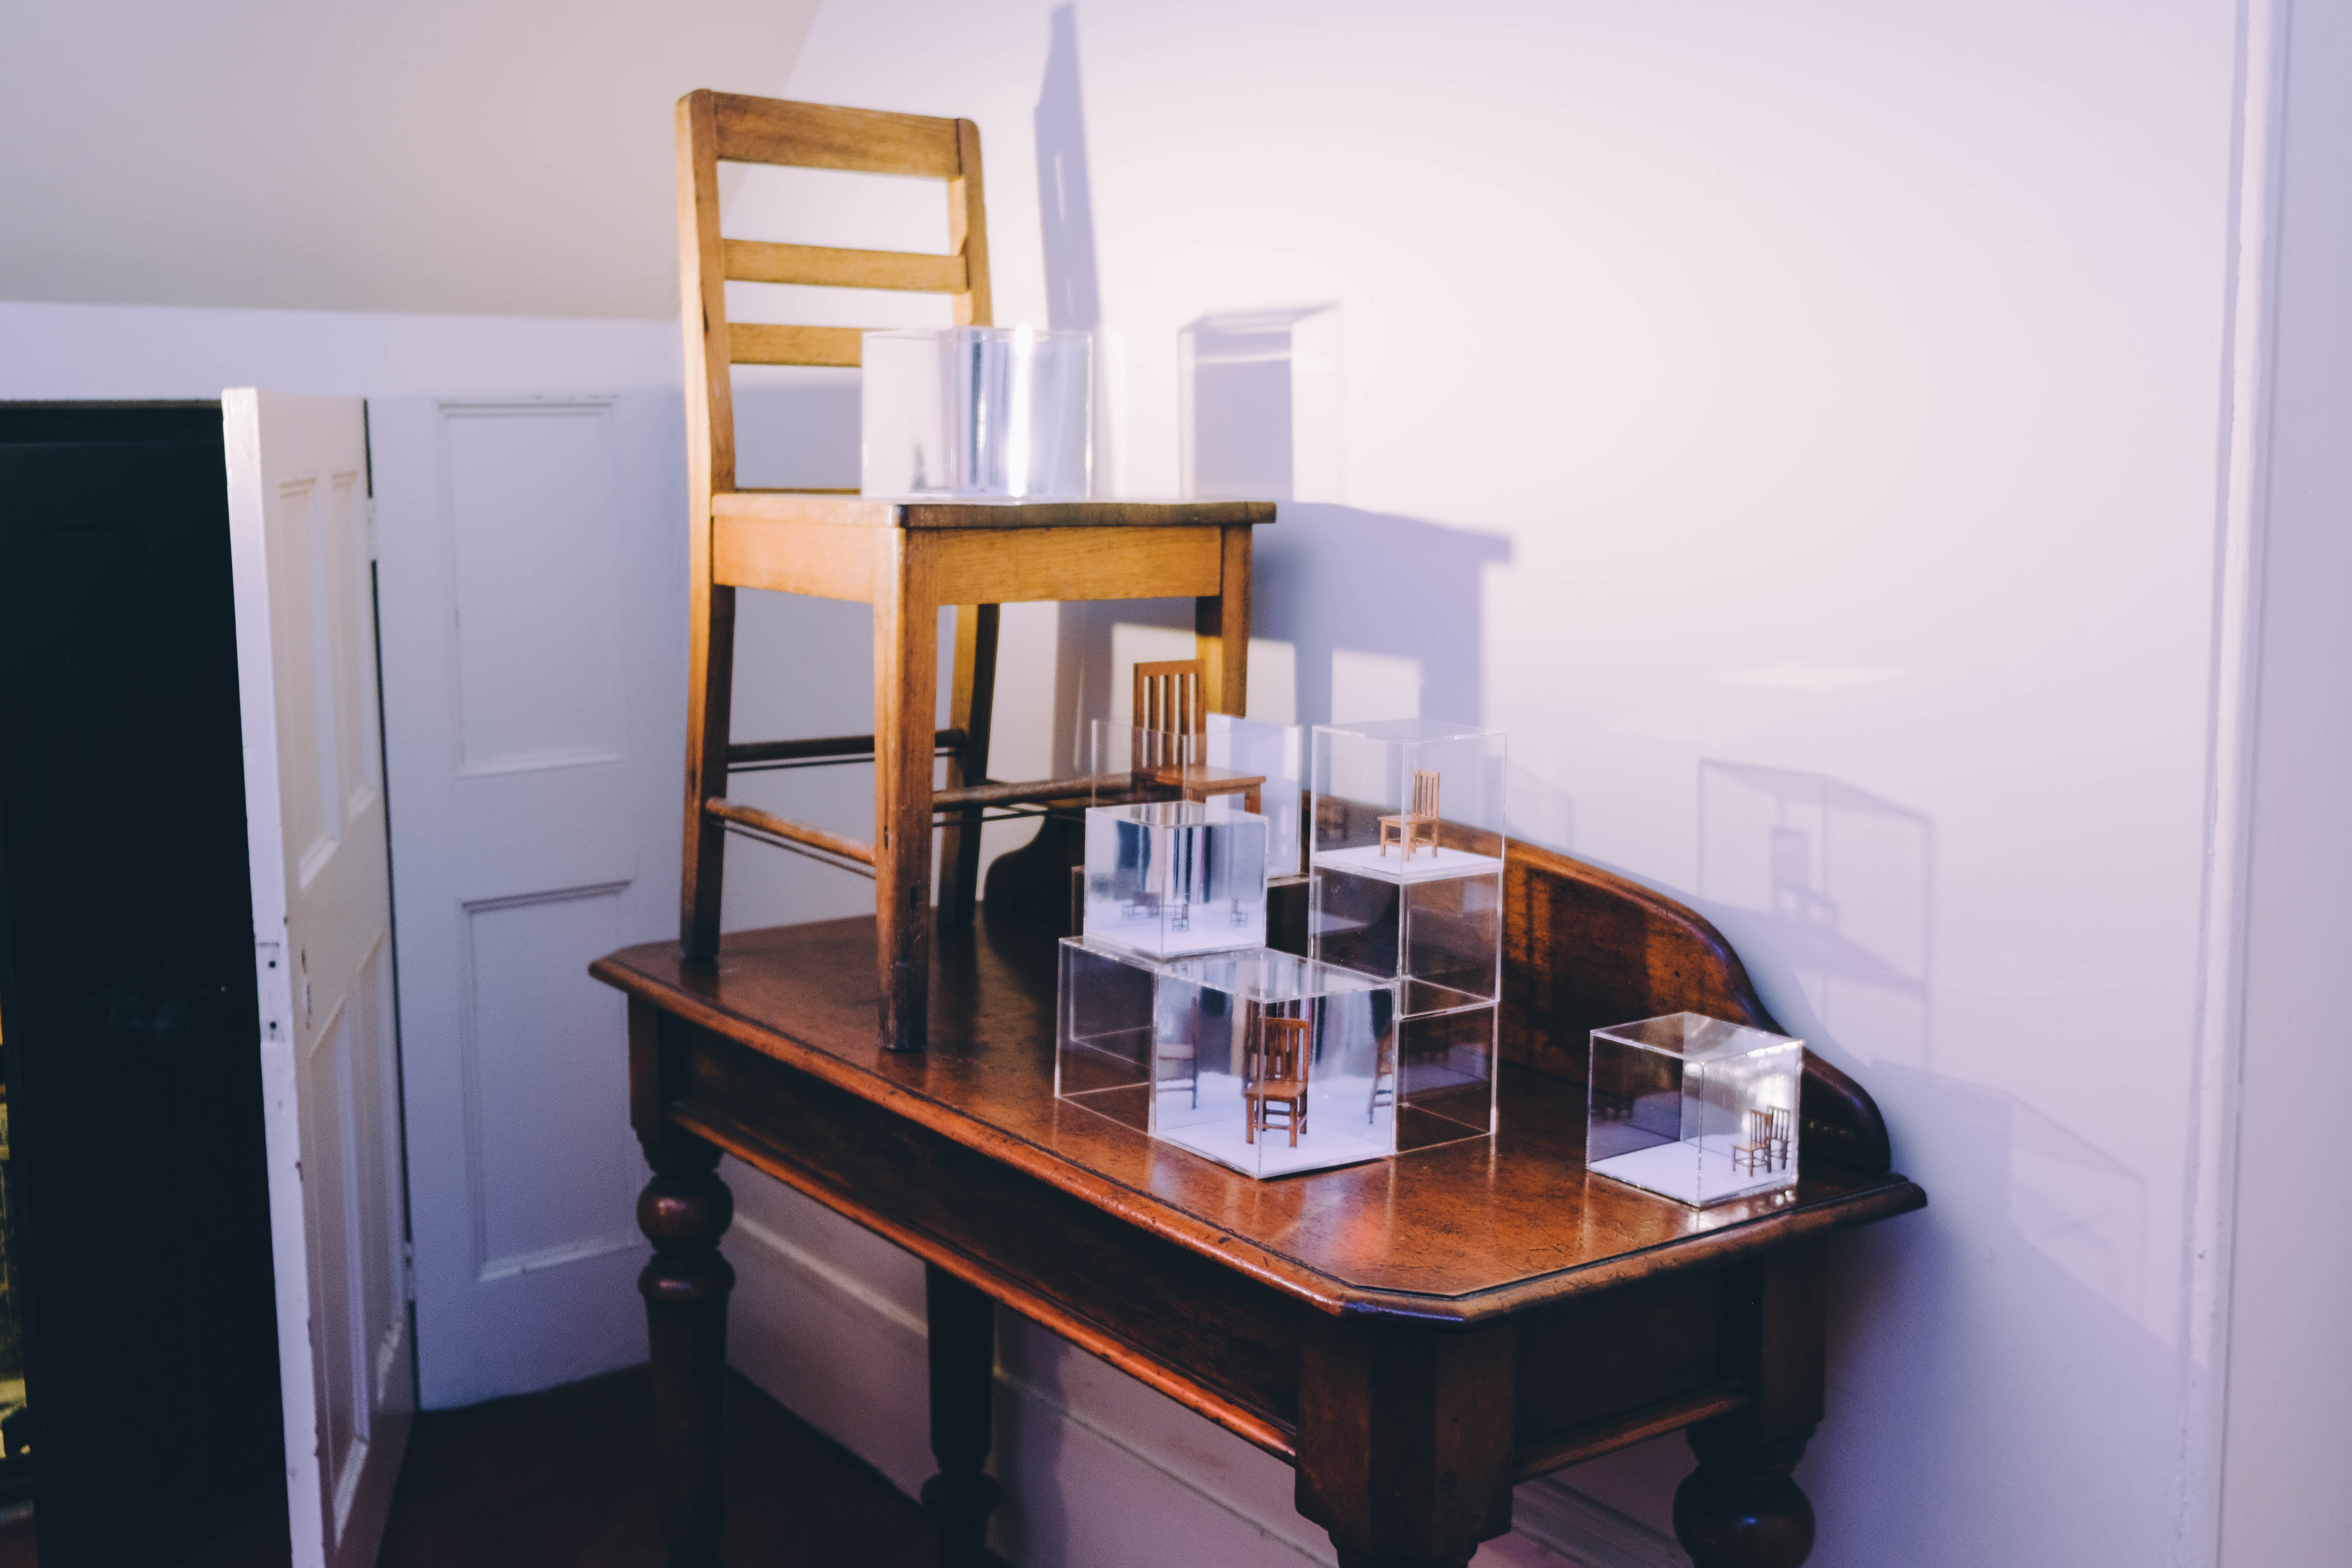 Display of chairs representing scale on table